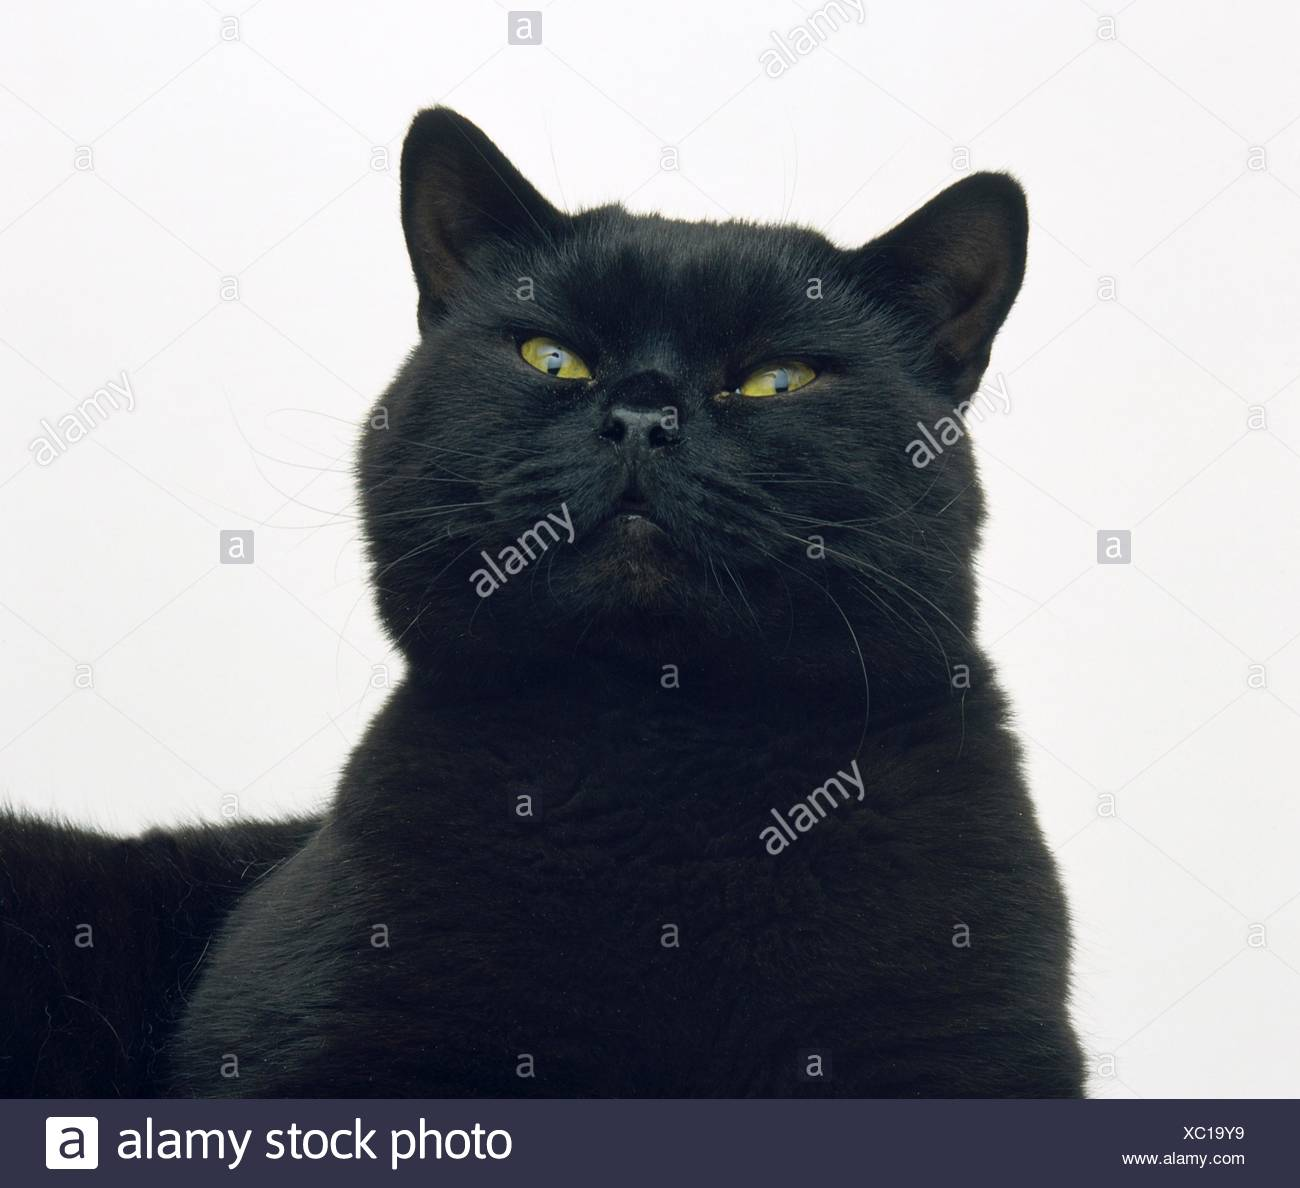 Black cat, head and shoulders - Stock Image